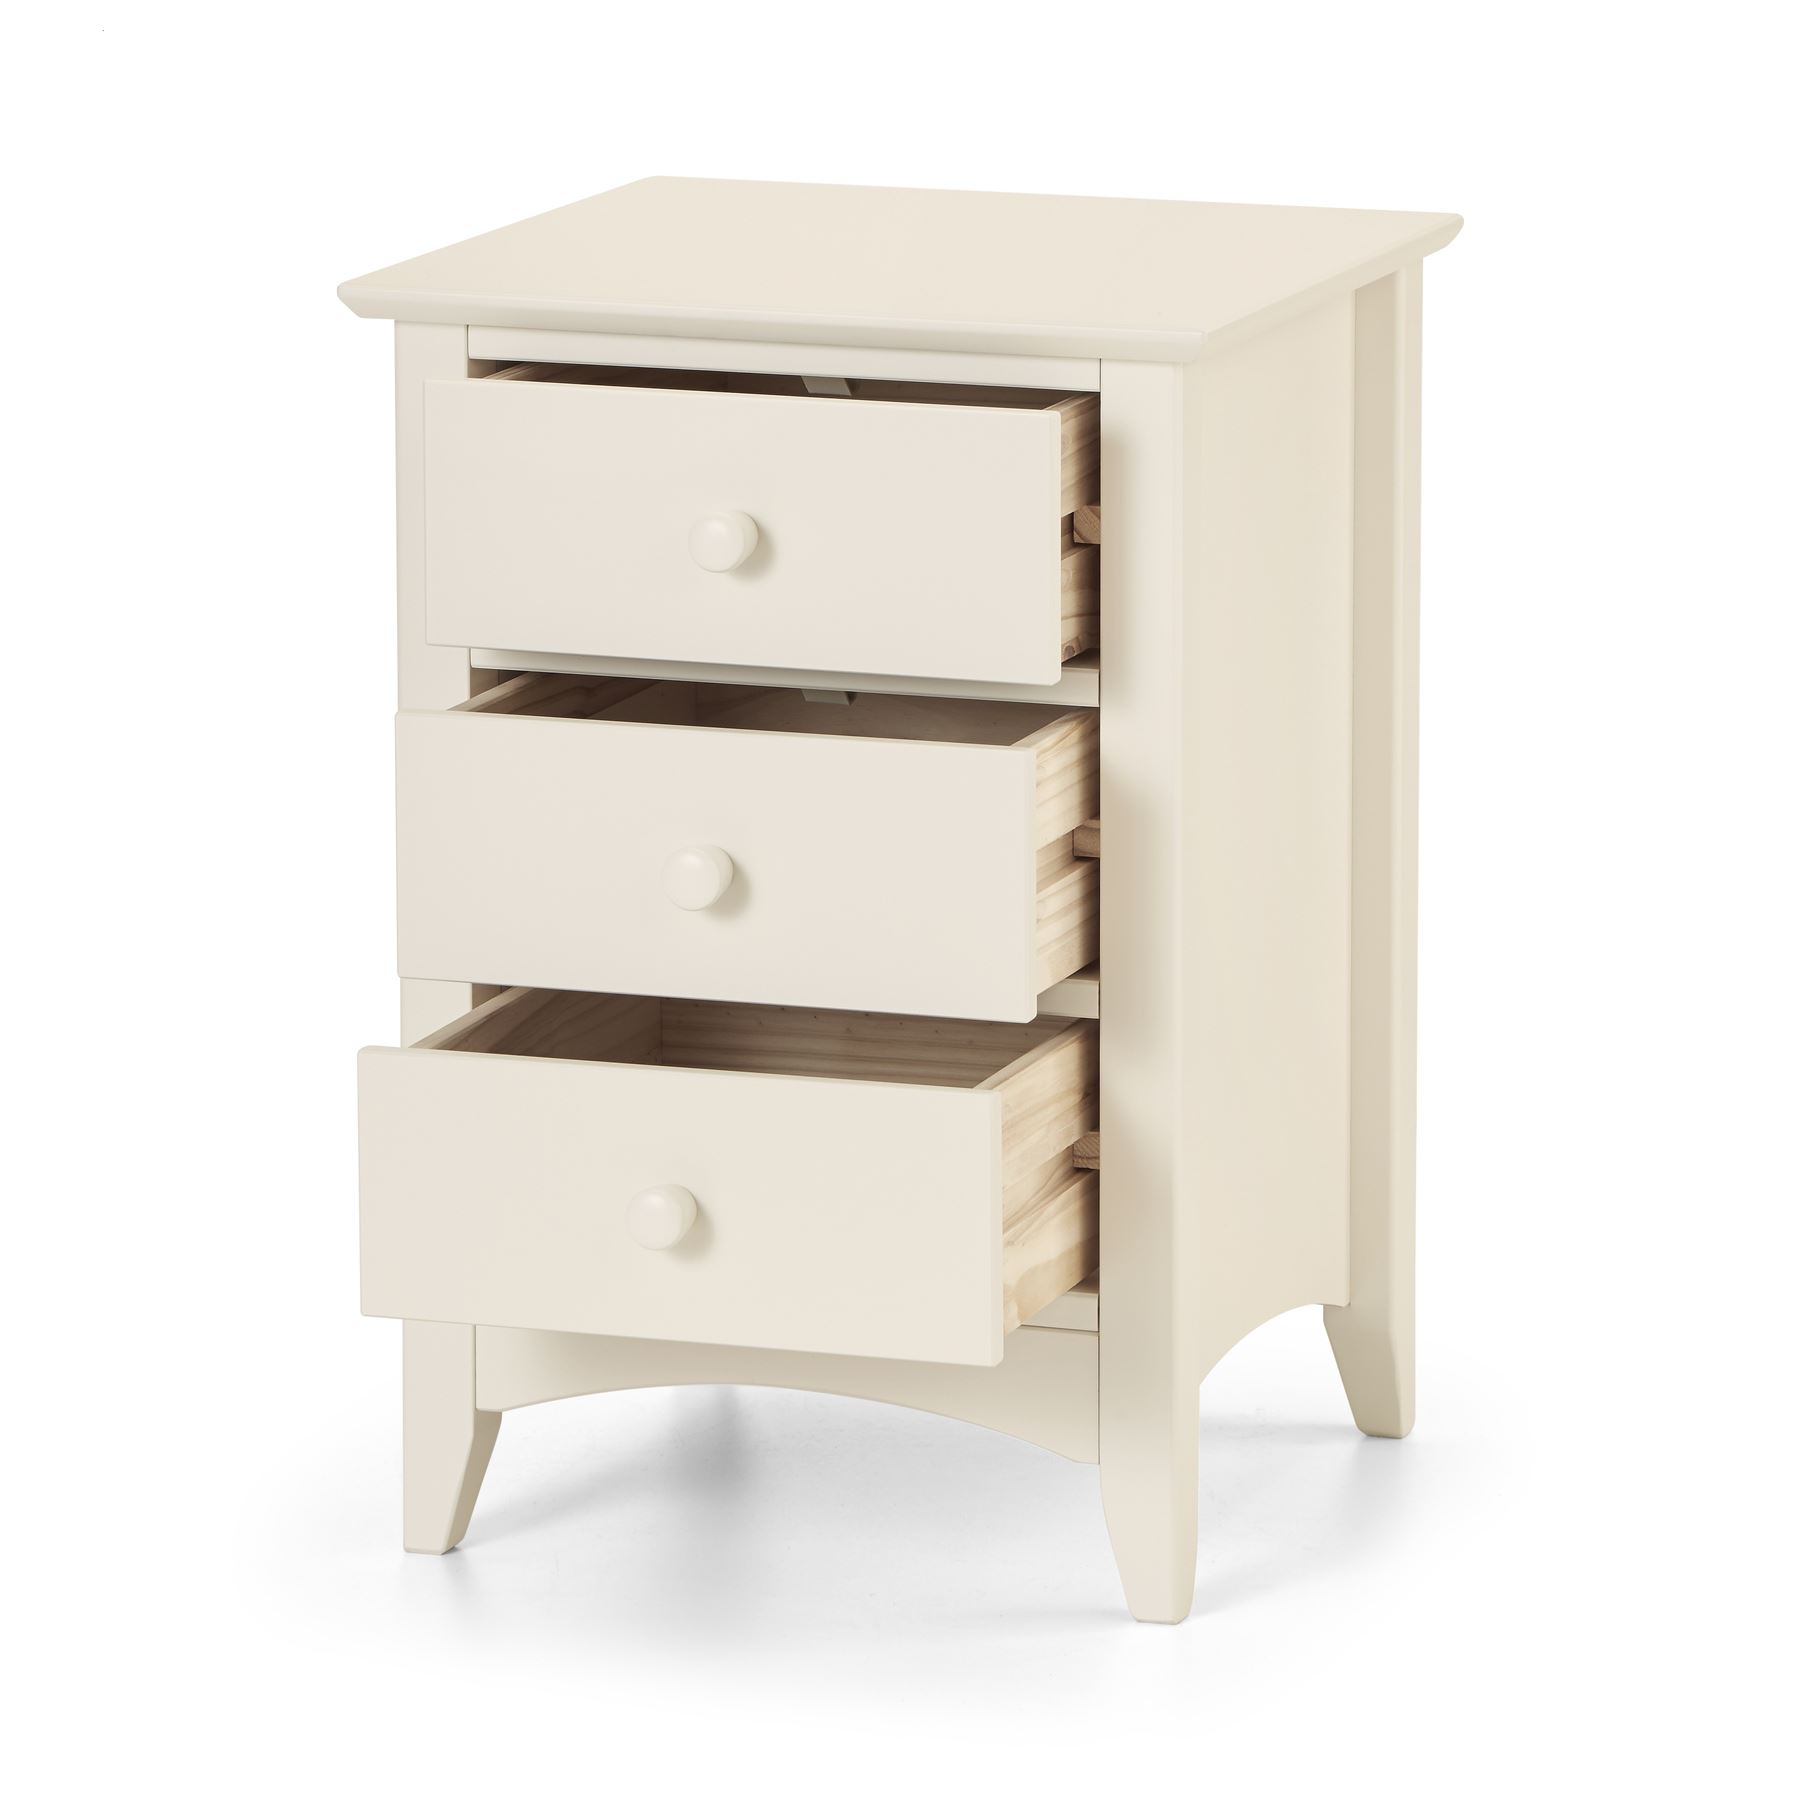 Julian Bowen Cameo Stone White Wood 3 Drawer Bedside Cabinet Night Stand Table